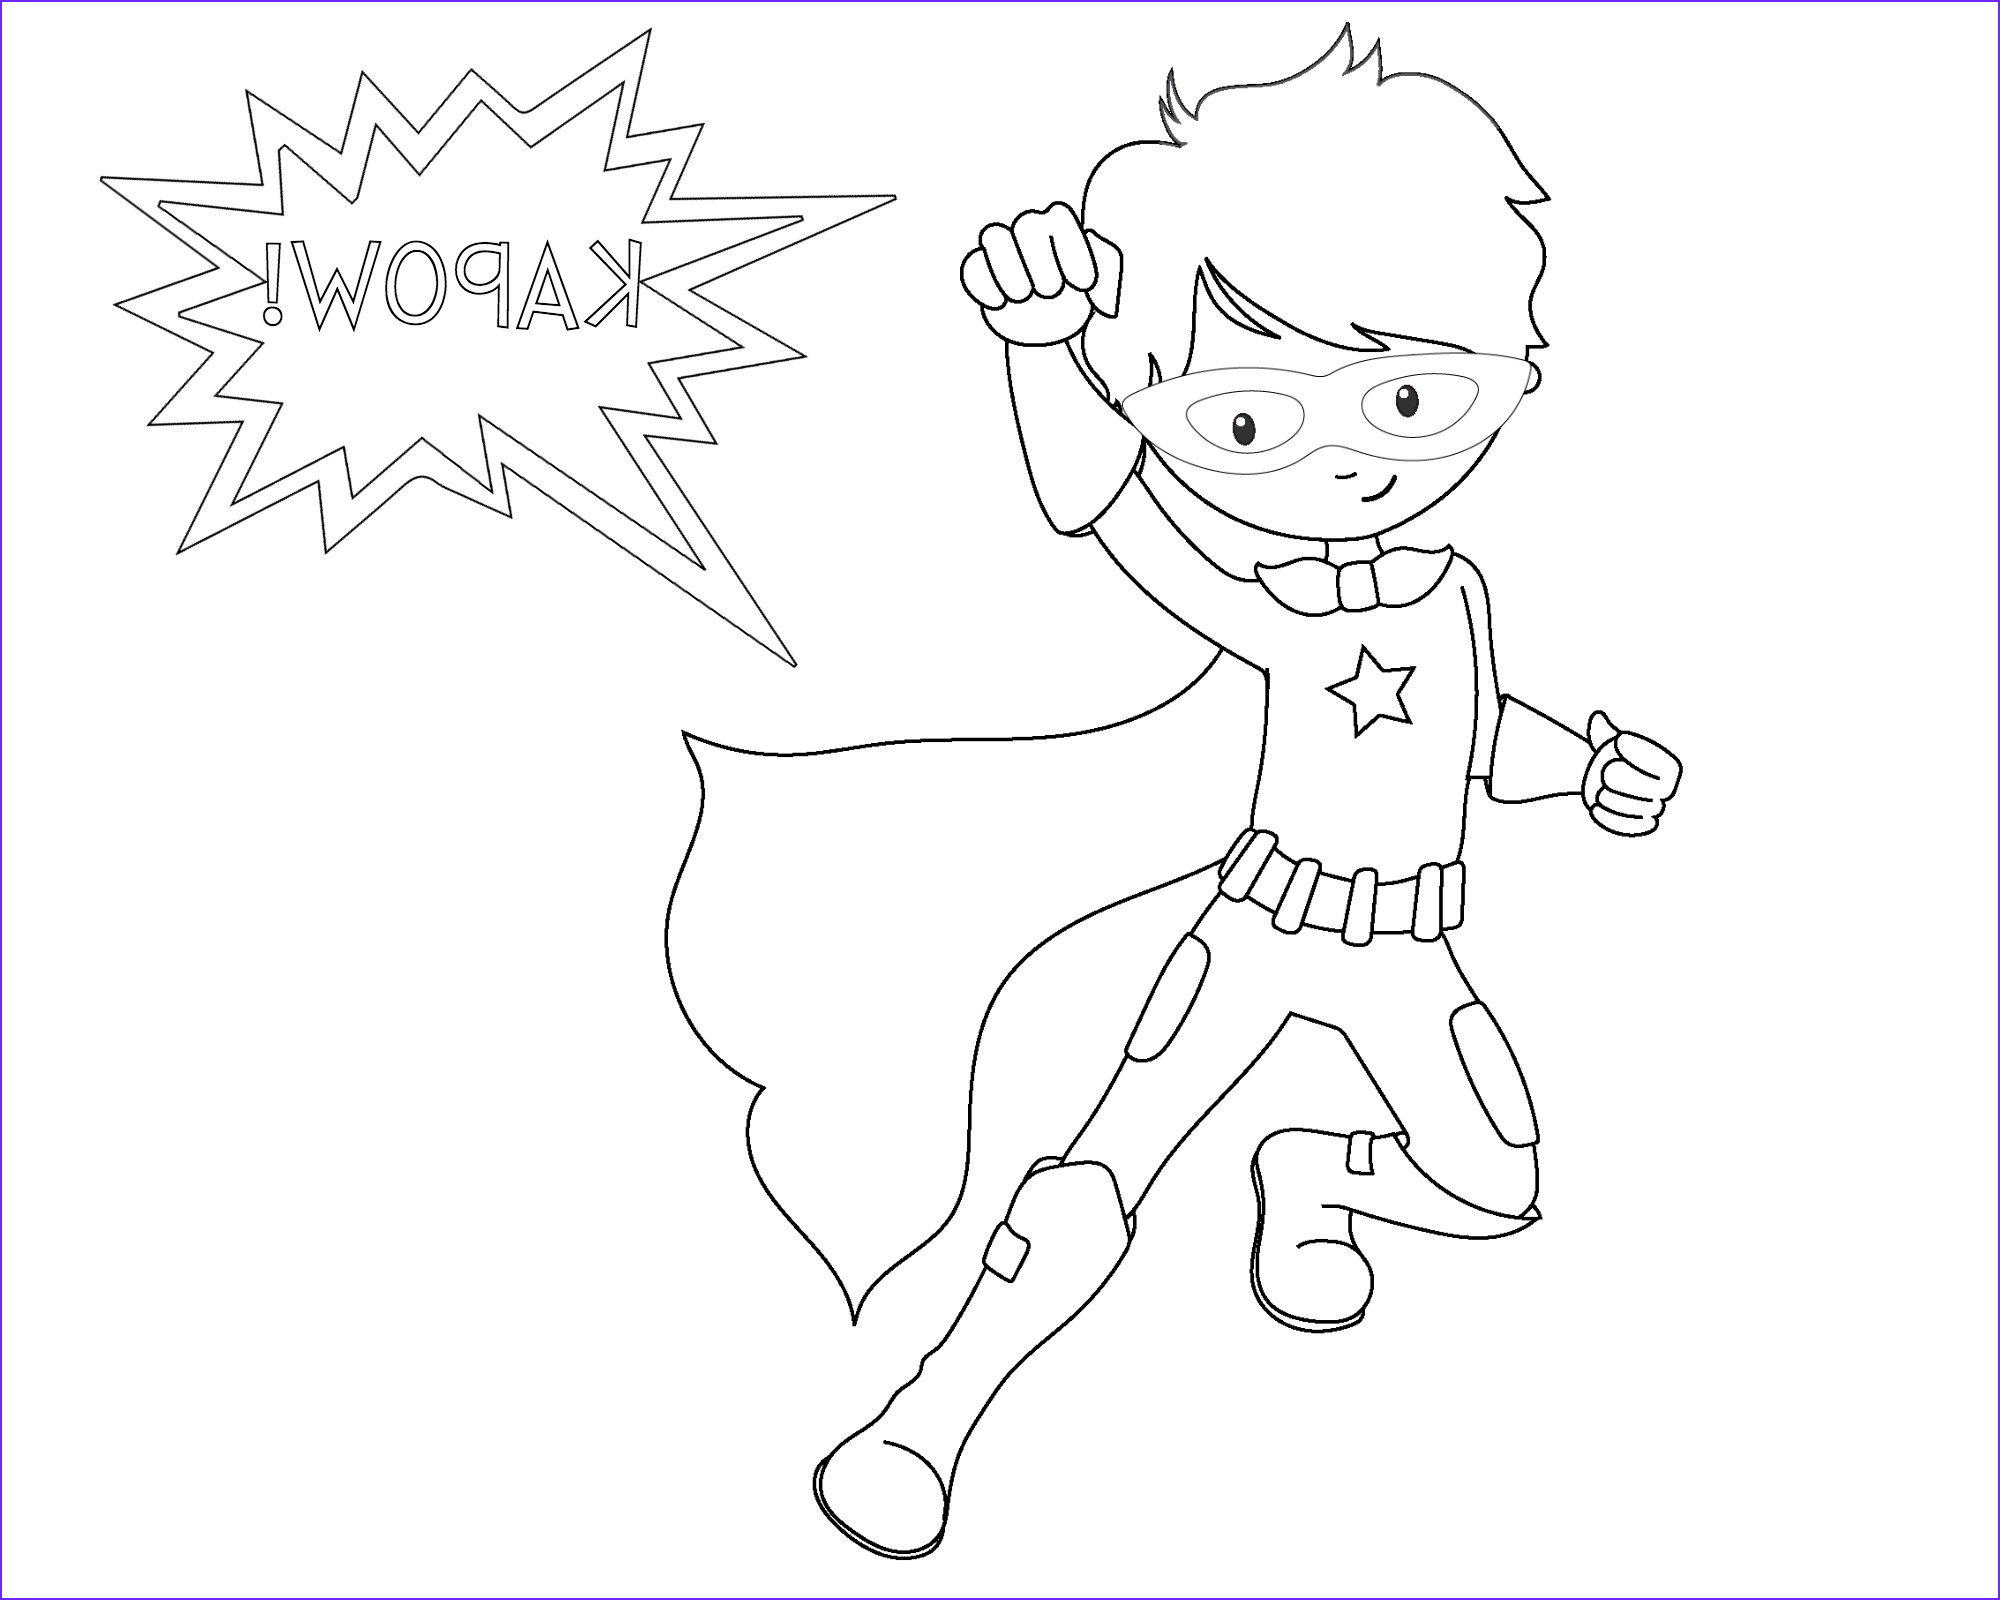 Superhero Coloring Pages Awesome Images Free Printable Superhero Coloring Sheets for Kids Crazy